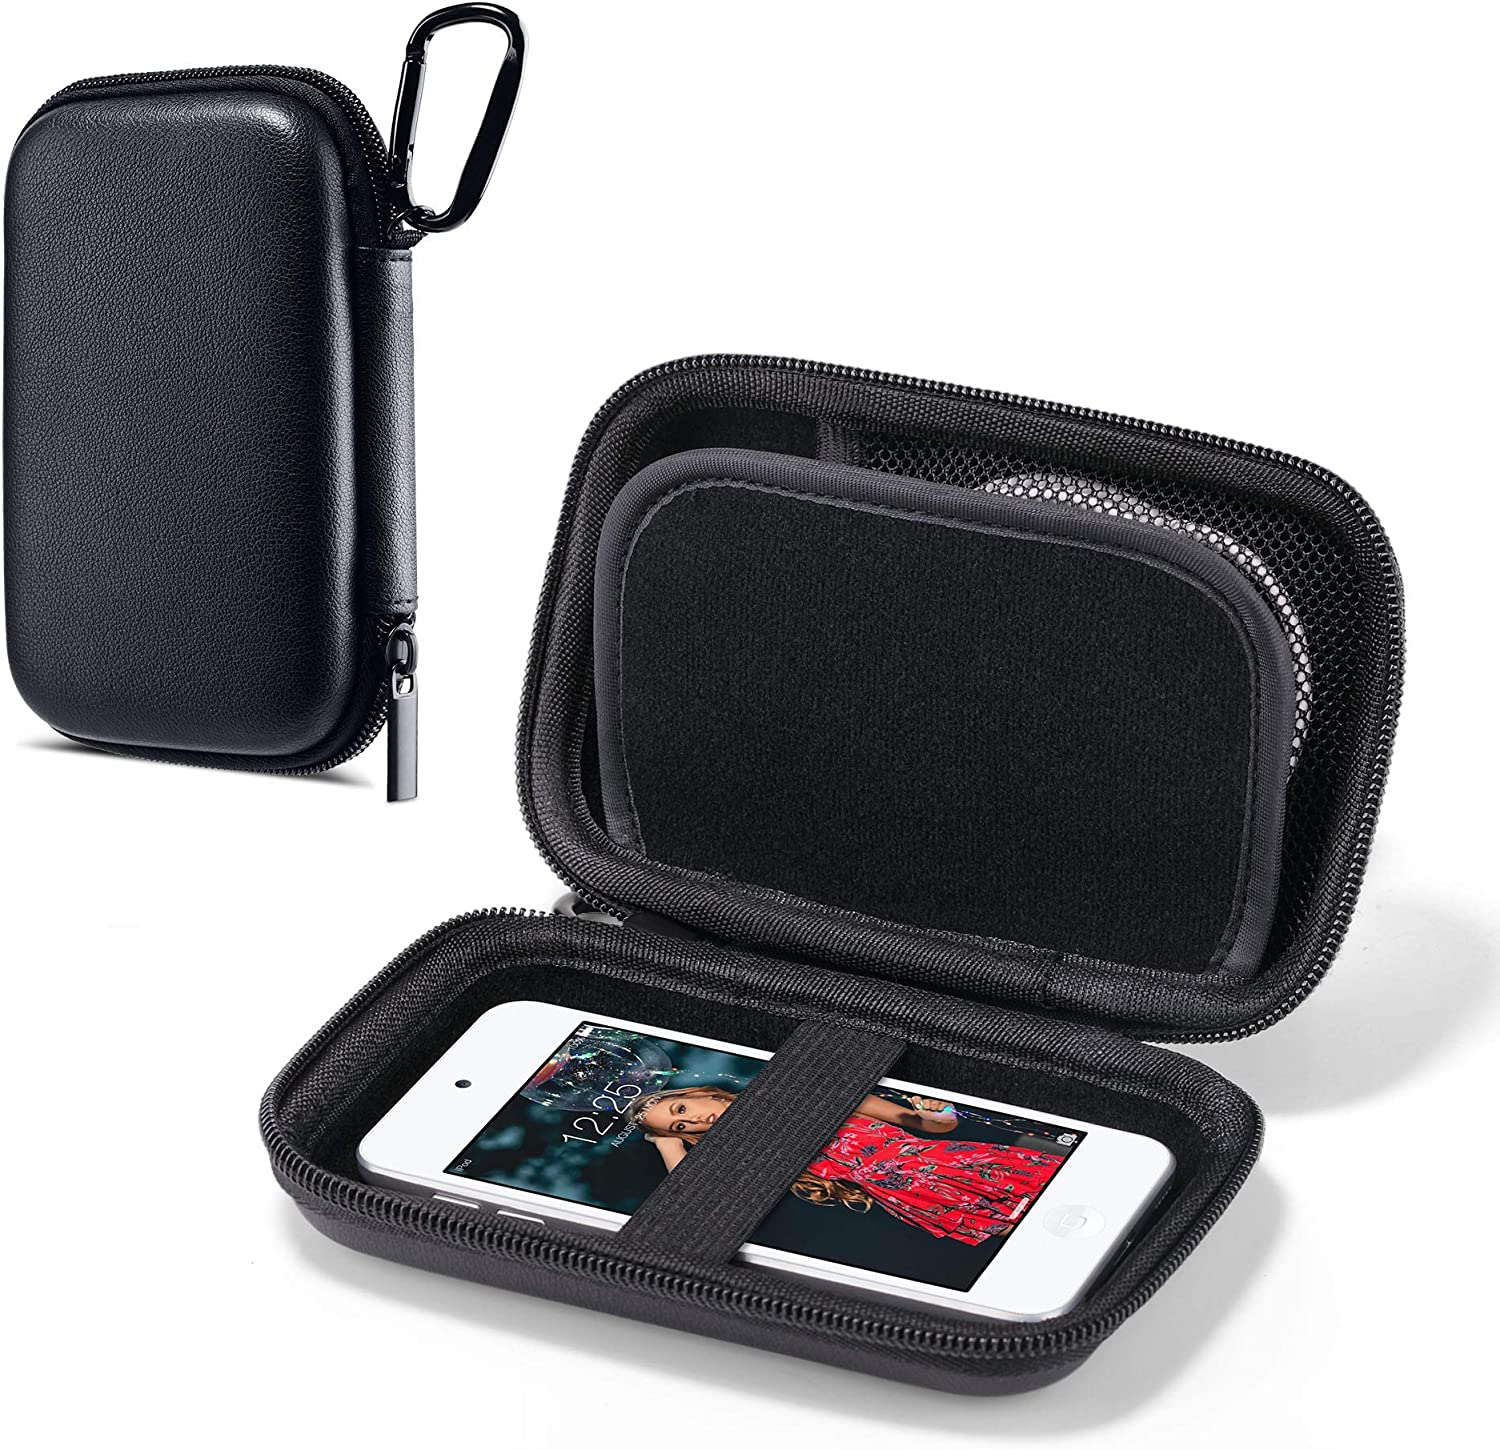 ULAK MP3 MP4 Player Case Bag Compatible with iPod Touch 7th/6th/5th Generation/Soulcker/Sandisk MP3 Player/G.G.Martinsen/Sony NW-A45 Fit for Earphones, USB Cable, Memory Cards, Black